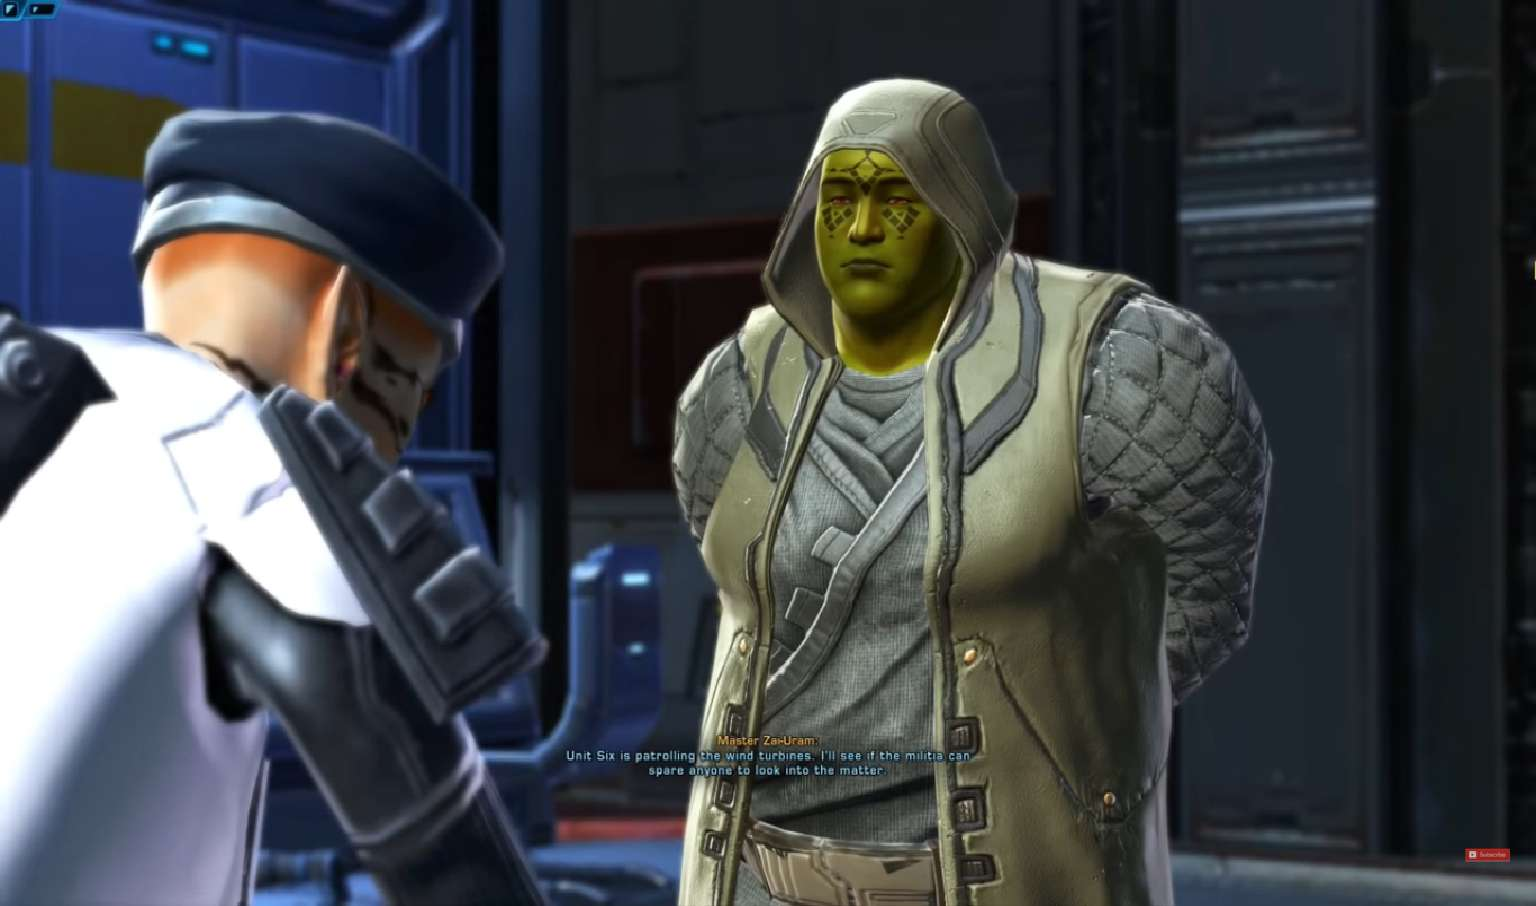 Conquest Points Broken On Planet Dantooine In Star Wars The Old Republic